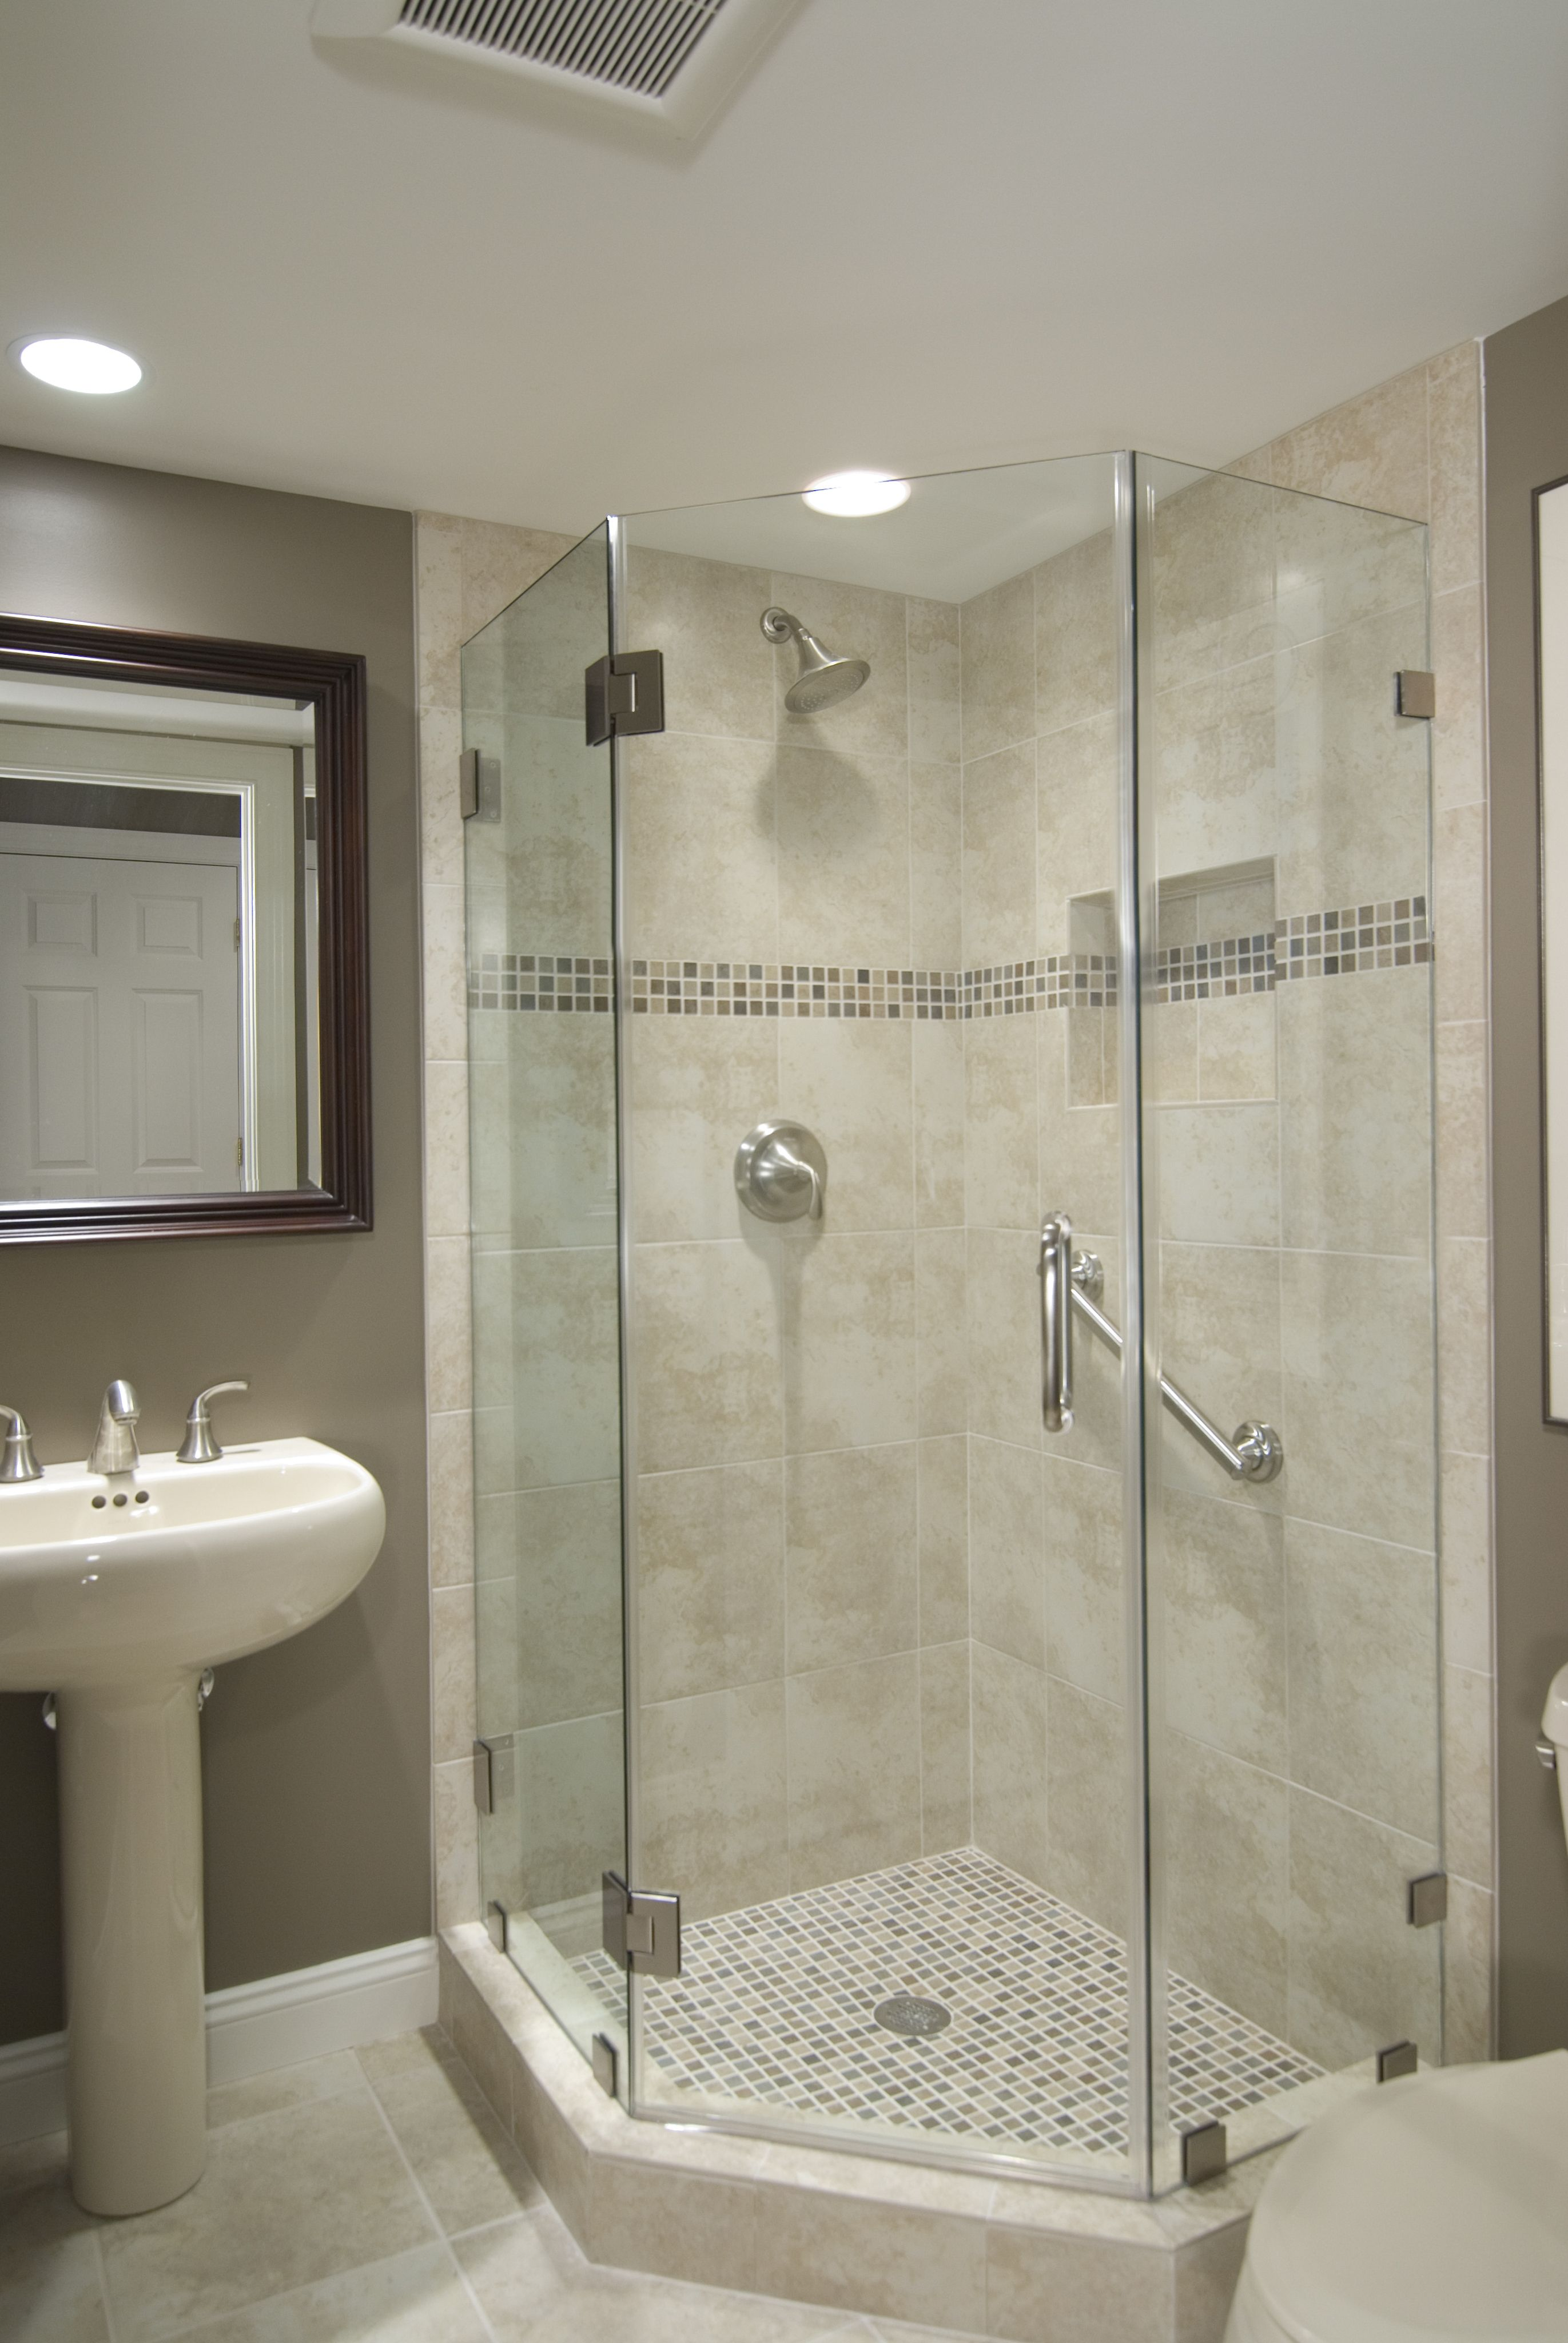 Pin By Dee Price Garris On Beautiful Bathrooms In Va And Md Bathroom Remodel Shower Basement Bathroom Design Shower Remodel